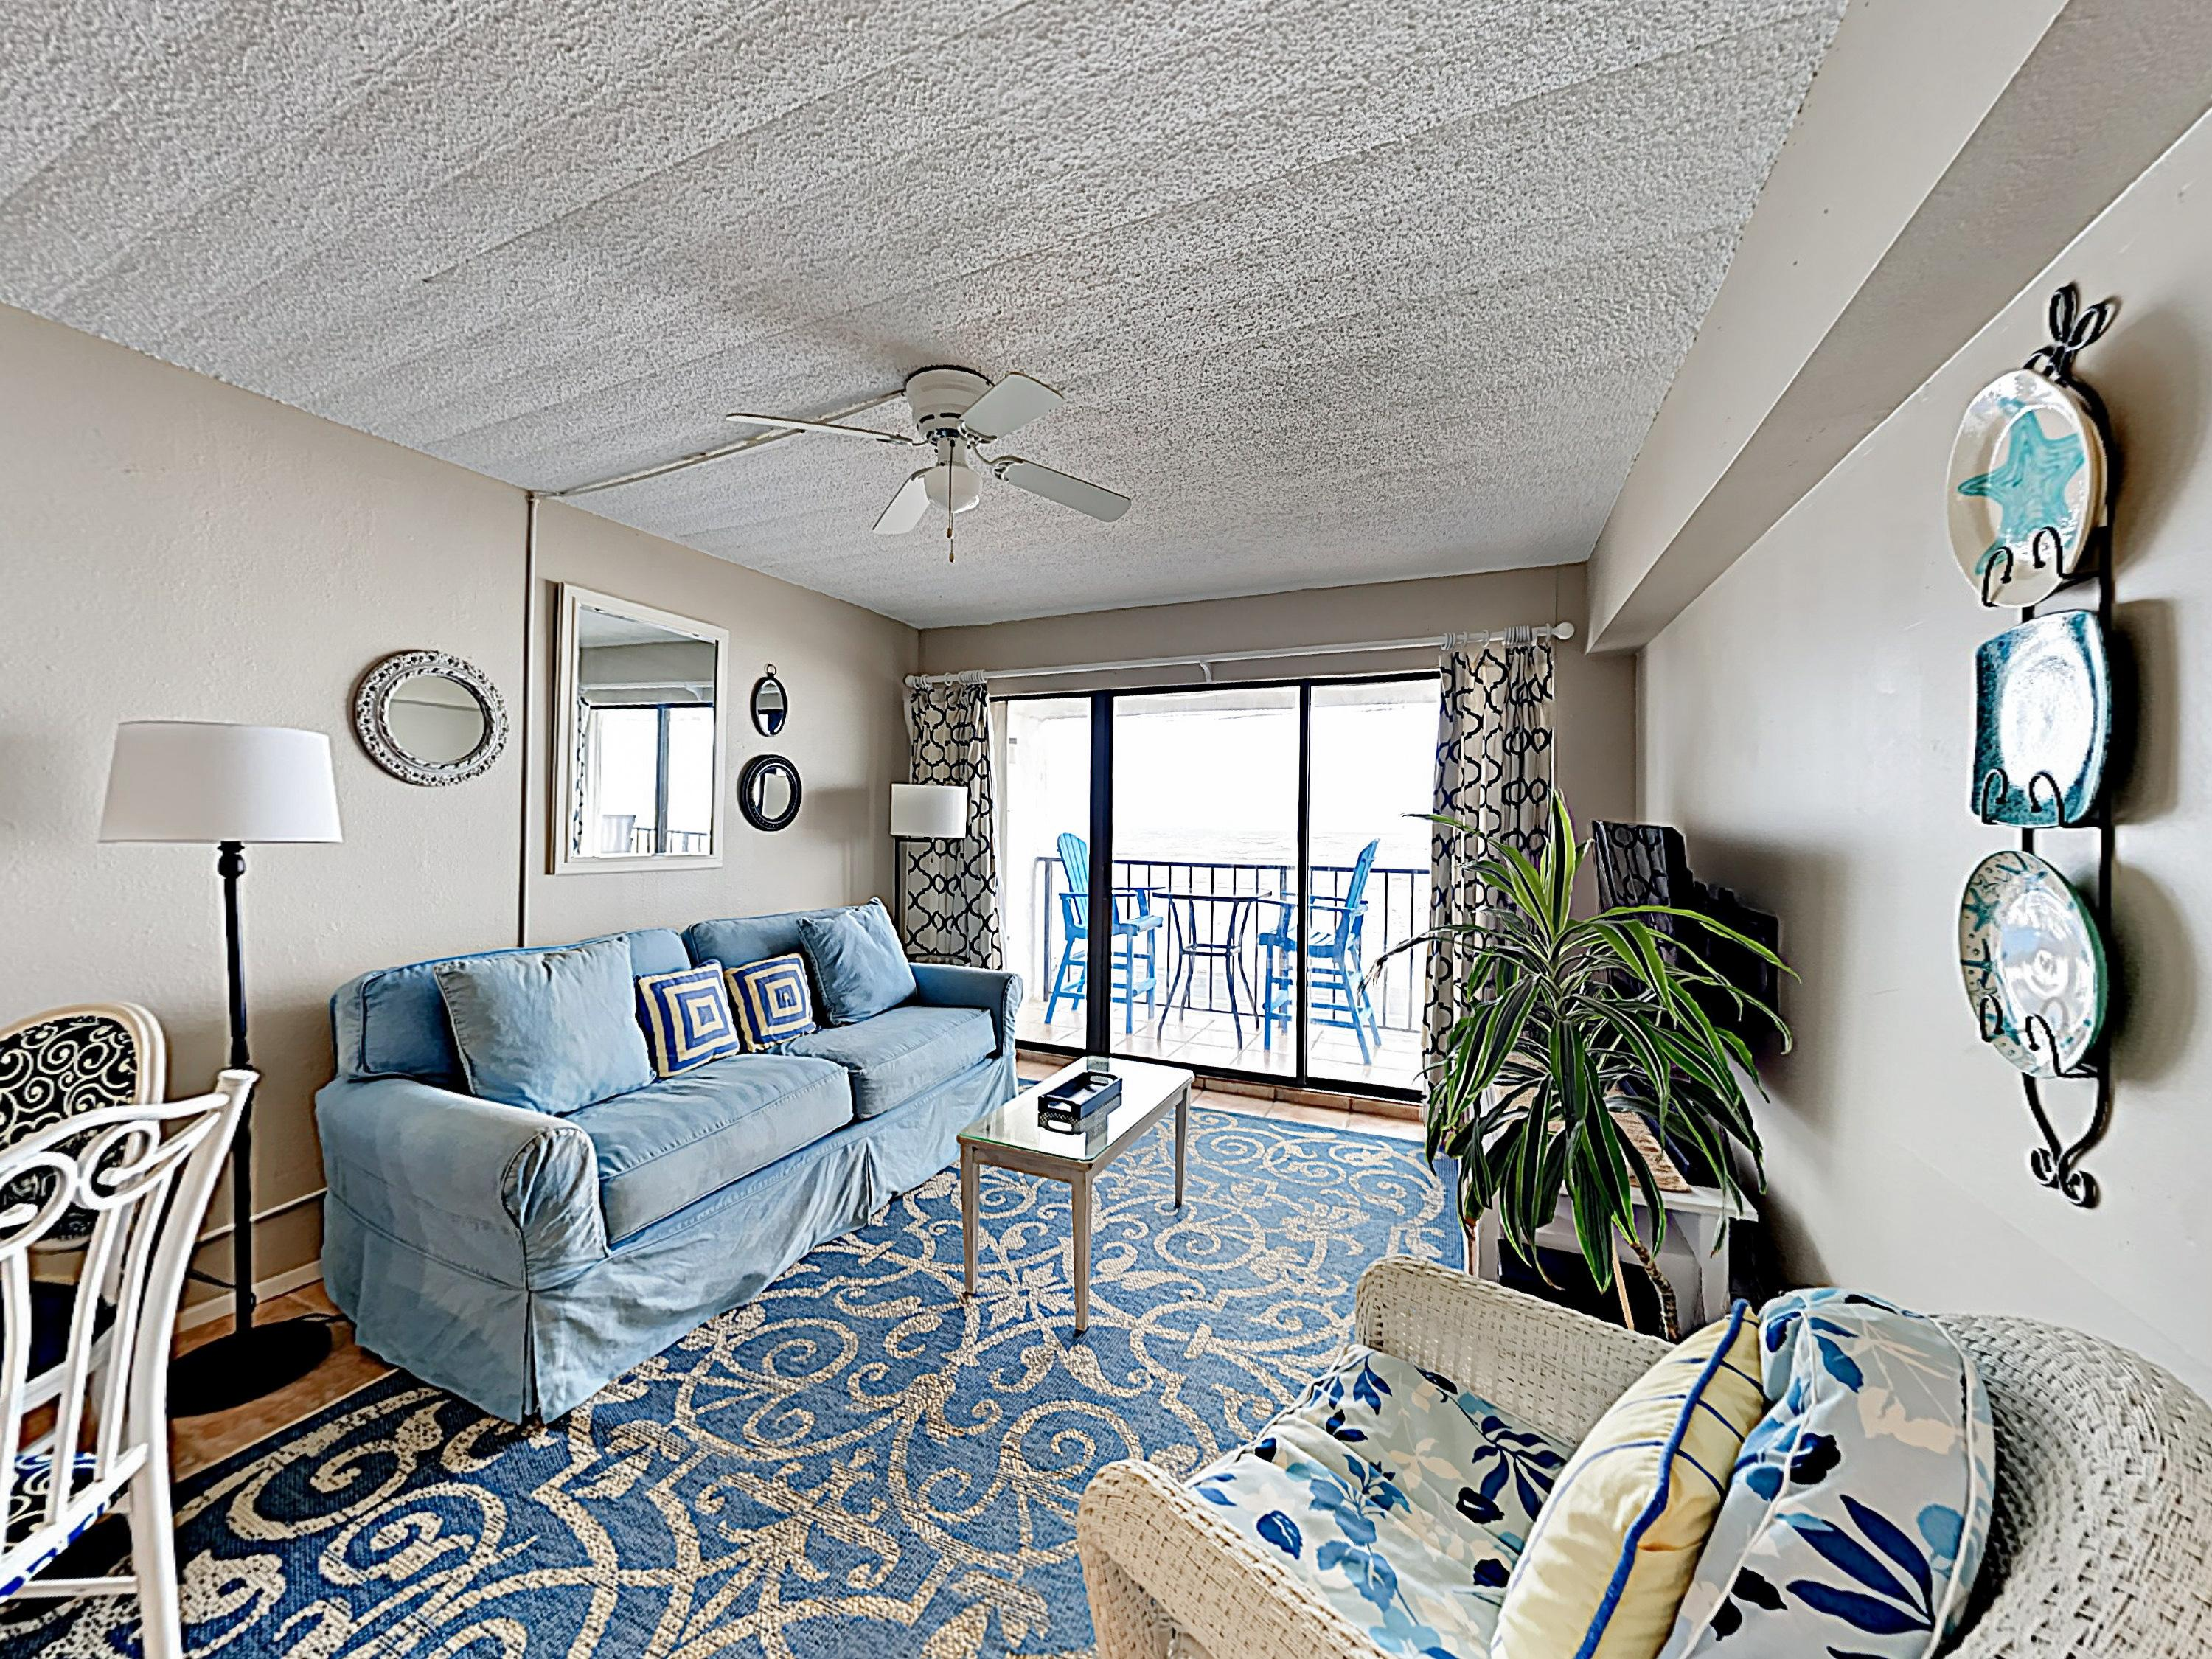 Welcome to Galveston. This condo is professionally managed by TurnKey Vacation Rentals.